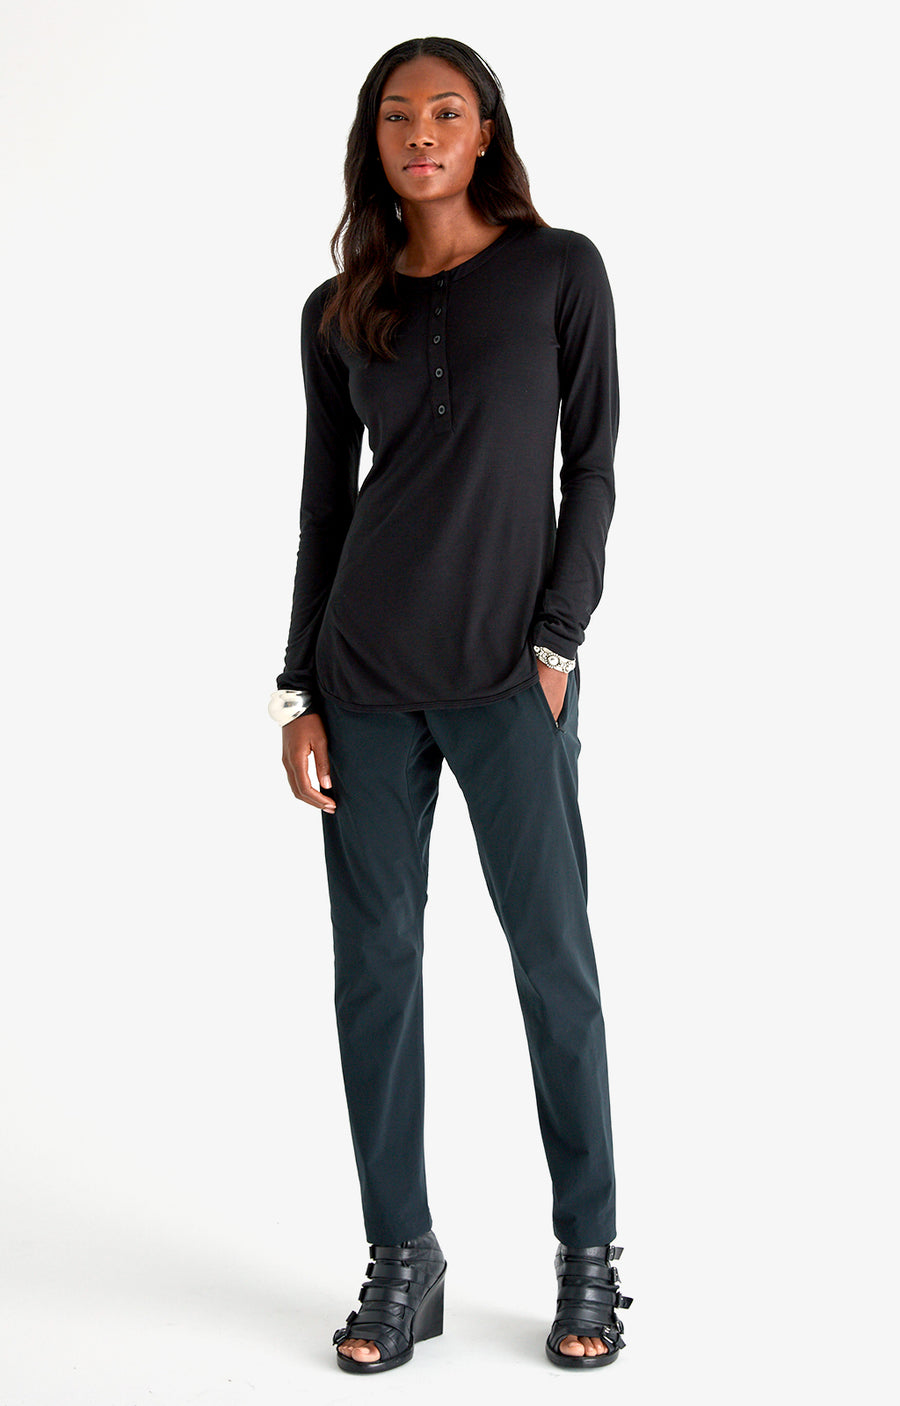 Eloquent - Sensually Soft Silk Knit Travel Henley in Black